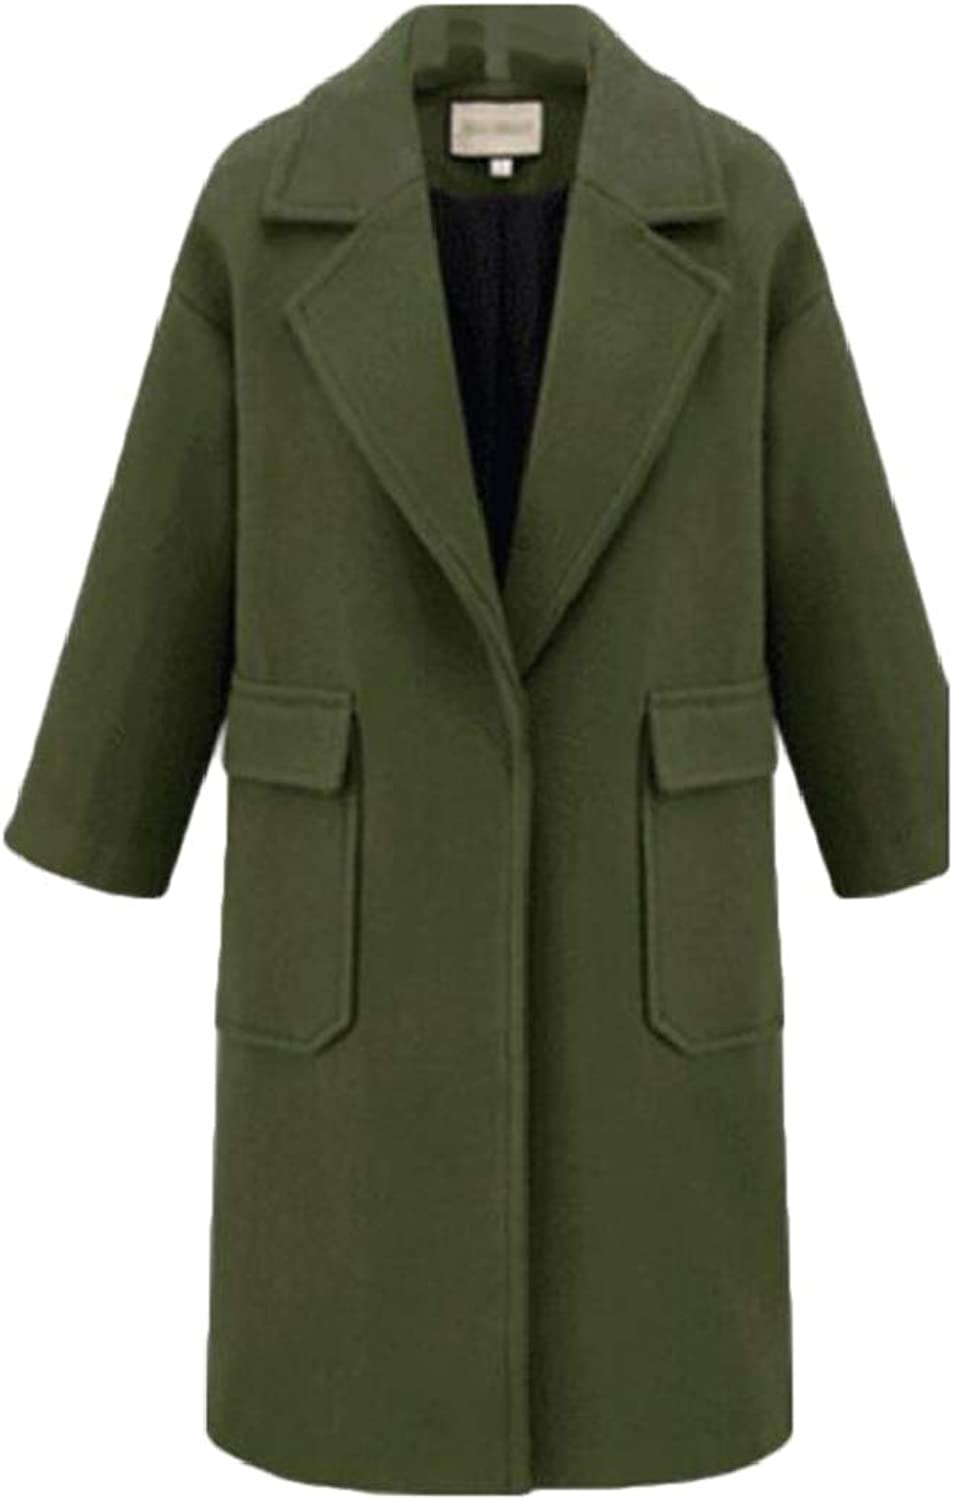 Yaolor Women Thickened Long Sleeve Lapel RelaxedFit Casual Pea Coat